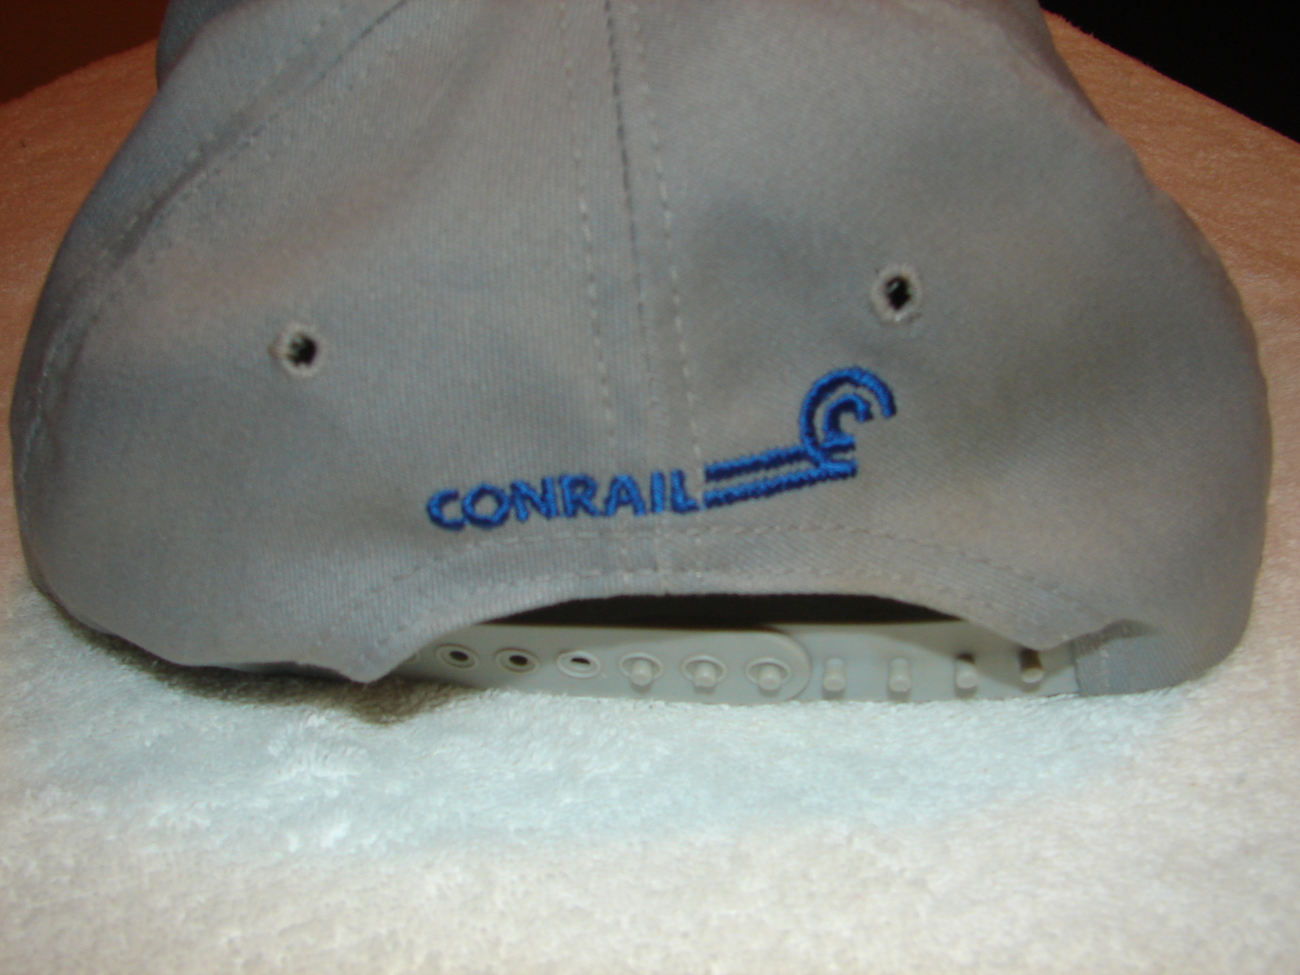 Men's Clothing, shoes and accessories - Conrail Anniversary Ball Cap